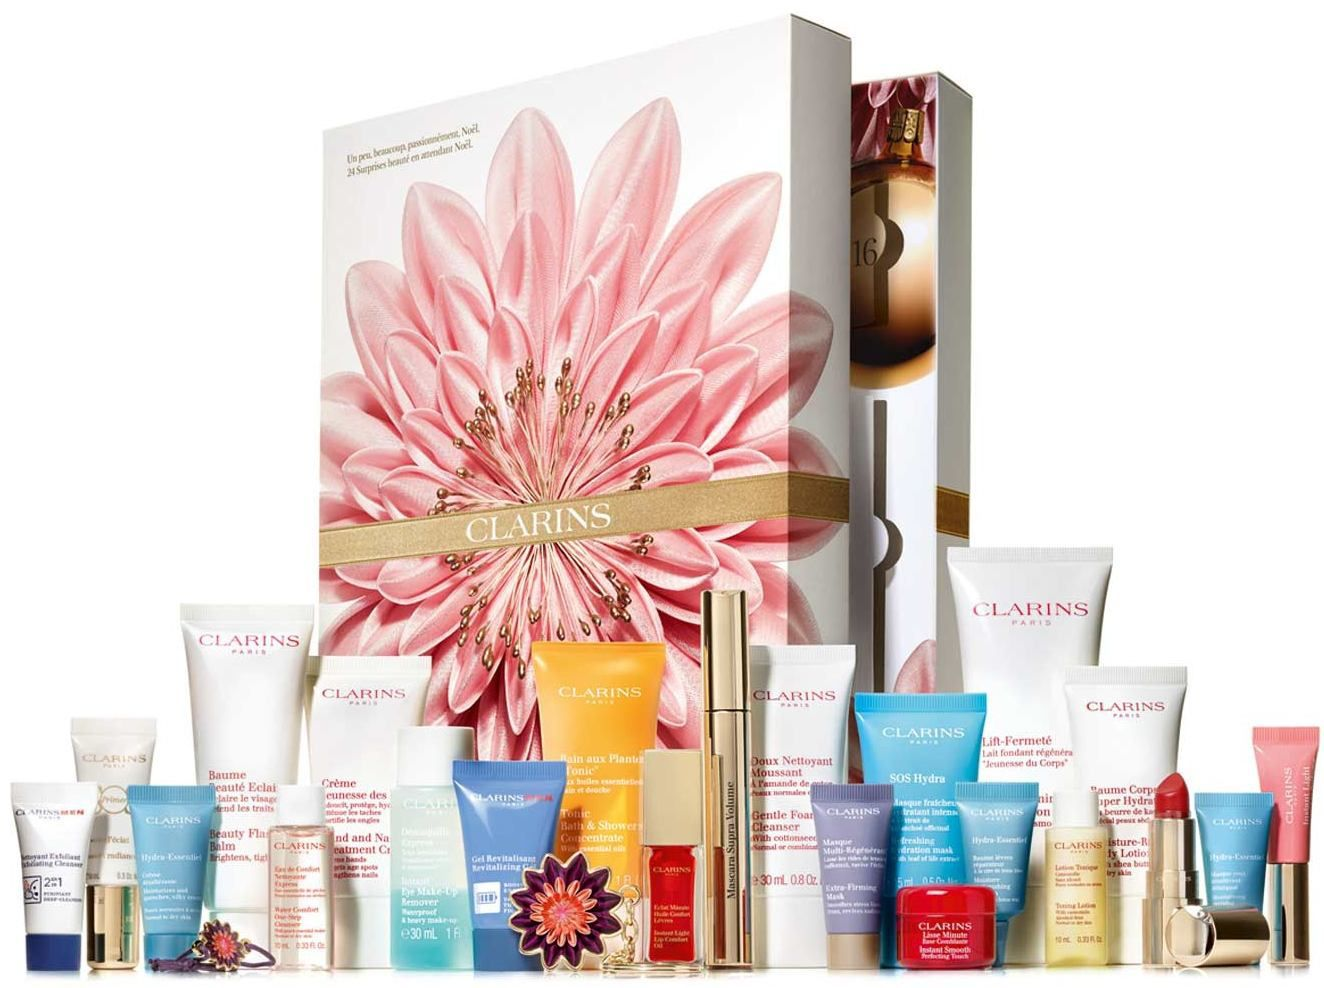 Calendrier Clarins 24 cases